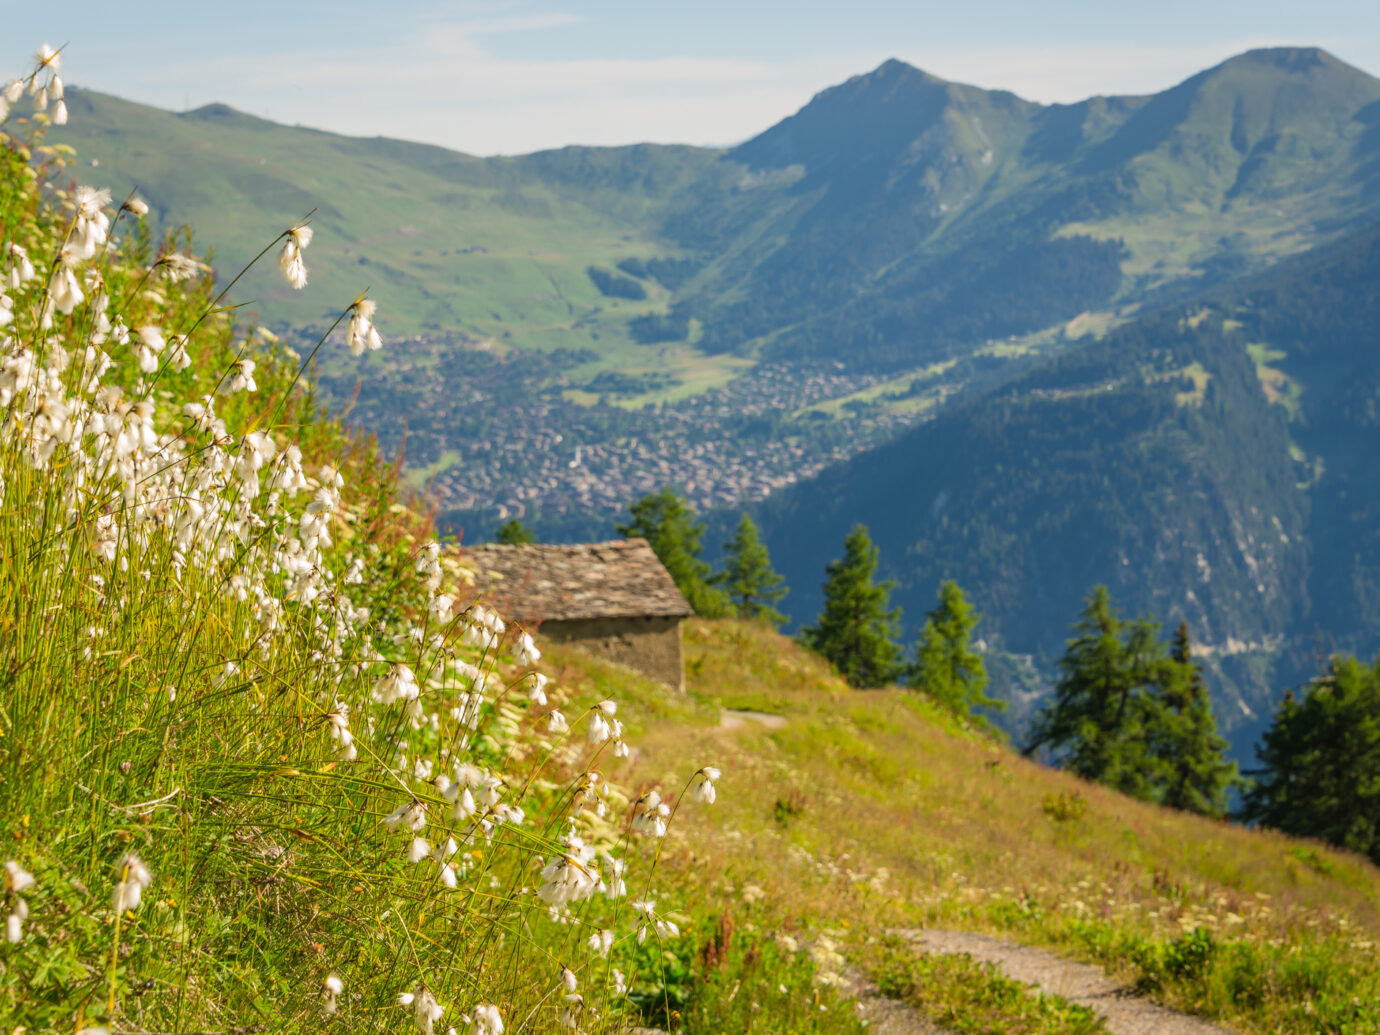 An alpine meadow bursting with wild flowers on the slopes of the mountains around Verbier in the Swiss alps.